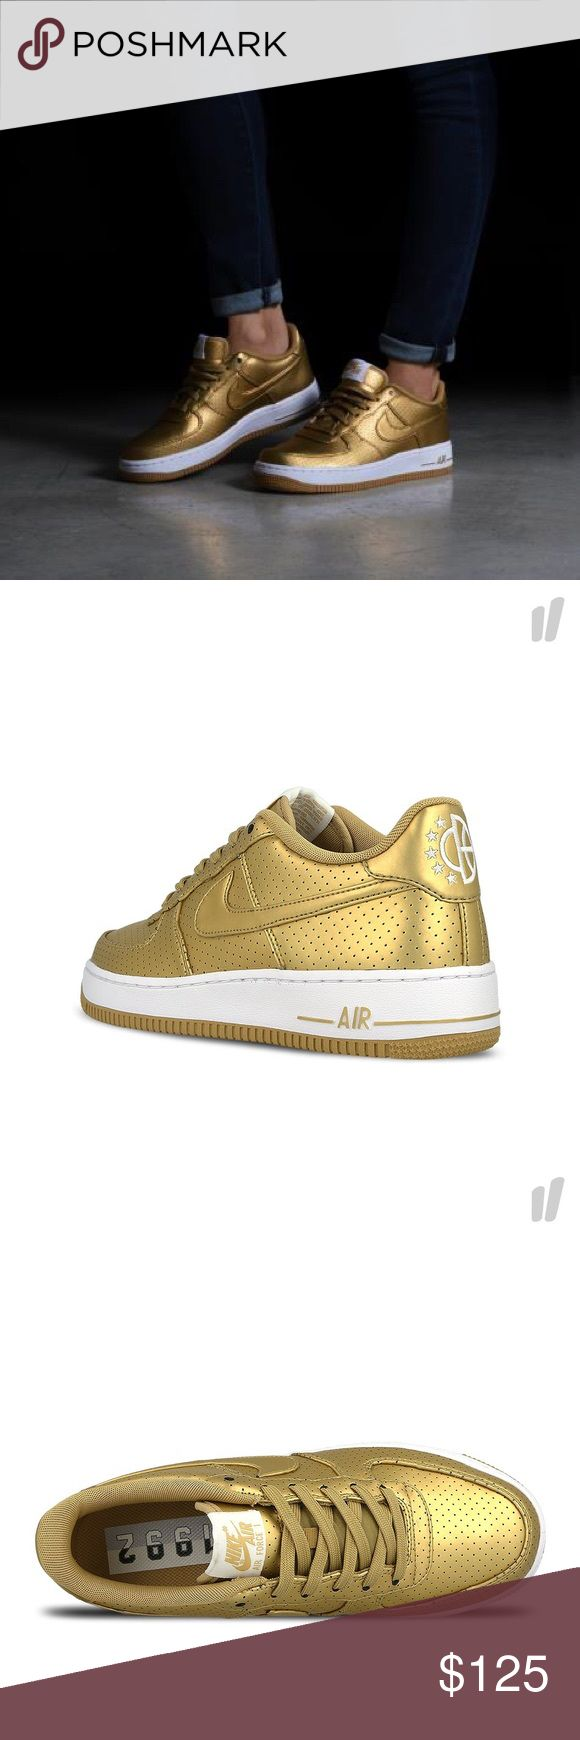 NIKE WOMENS AIR FORCE 1 LV8 ALL GOLD SHOES Shoes are a size 6 youth. Which is a women's size 7.5. I posted a sizing chart for your convenience. Brand new without box. 100% authentic Nike Shoes Sneakers